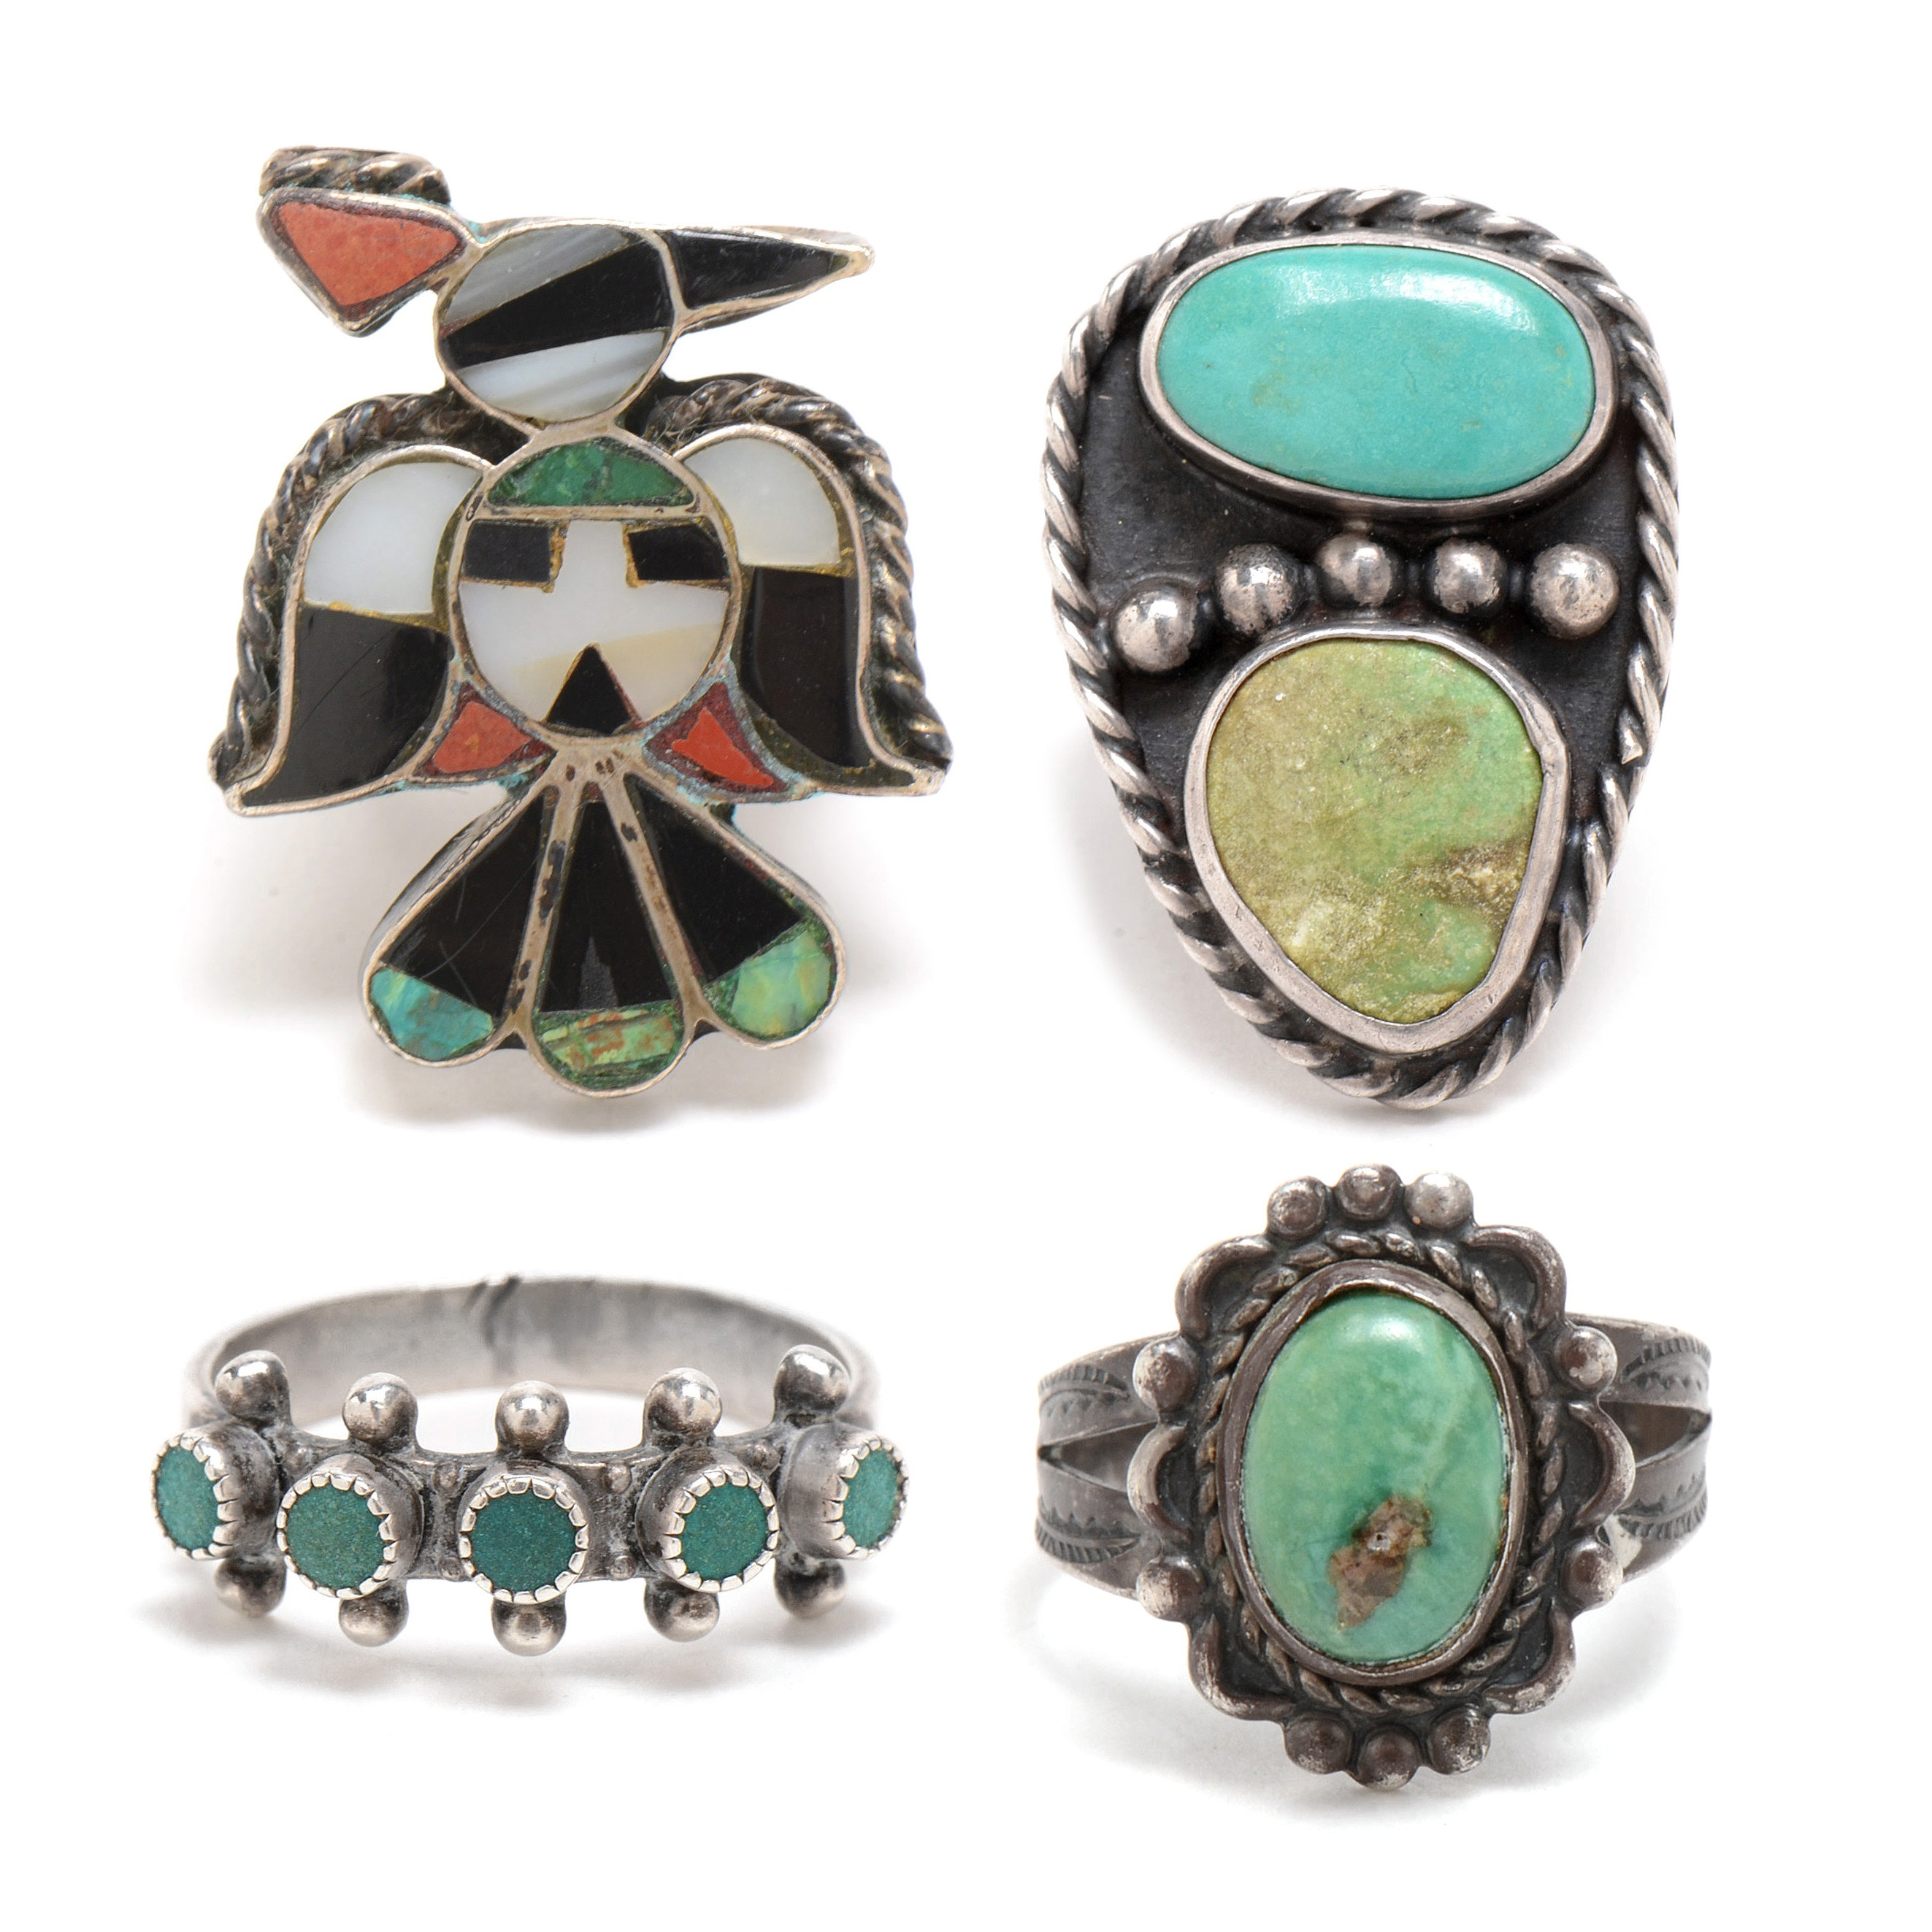 Assortment of Sterling Silver Turquoise Rings